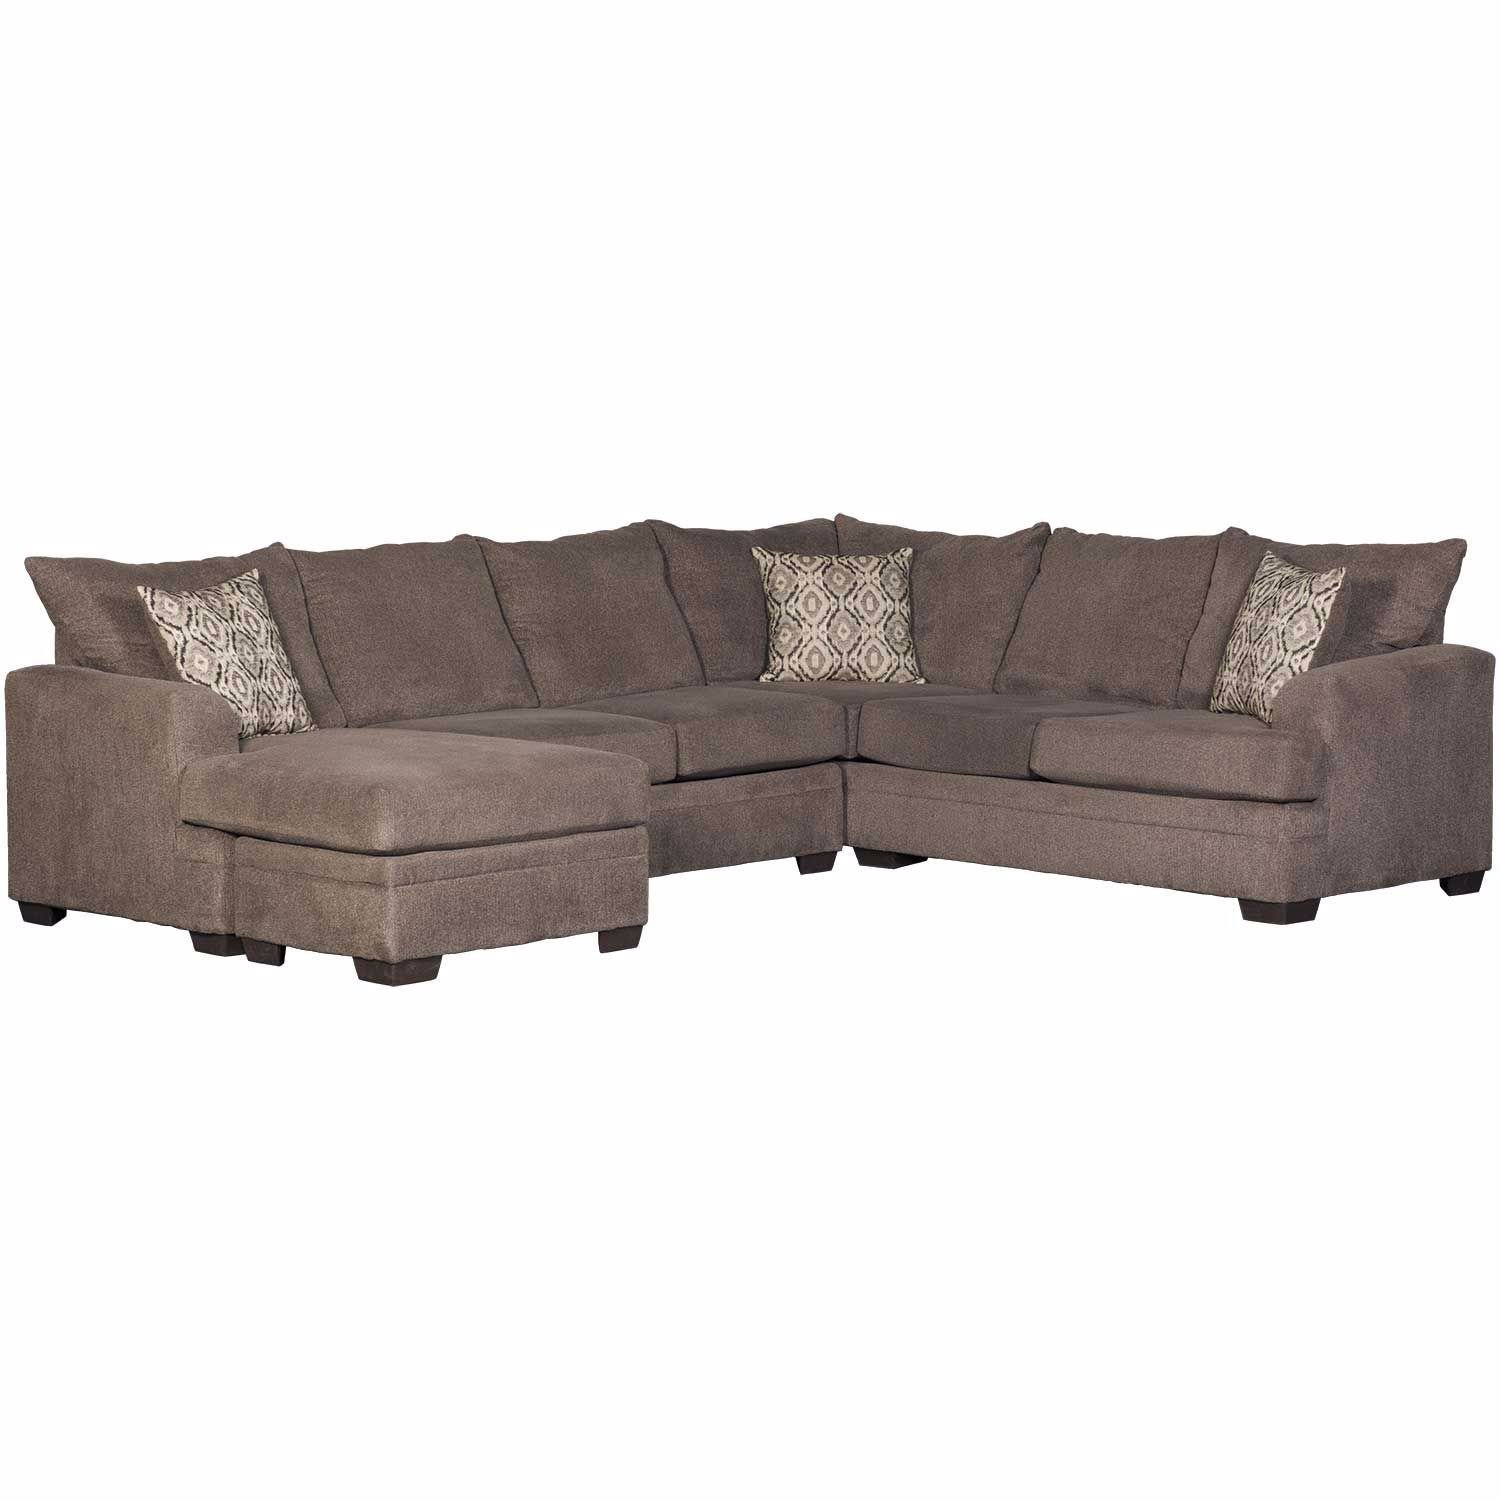 Magnificent 2Pc Laf Pewter Sectional W Chaise Pdpeps Interior Chair Design Pdpepsorg